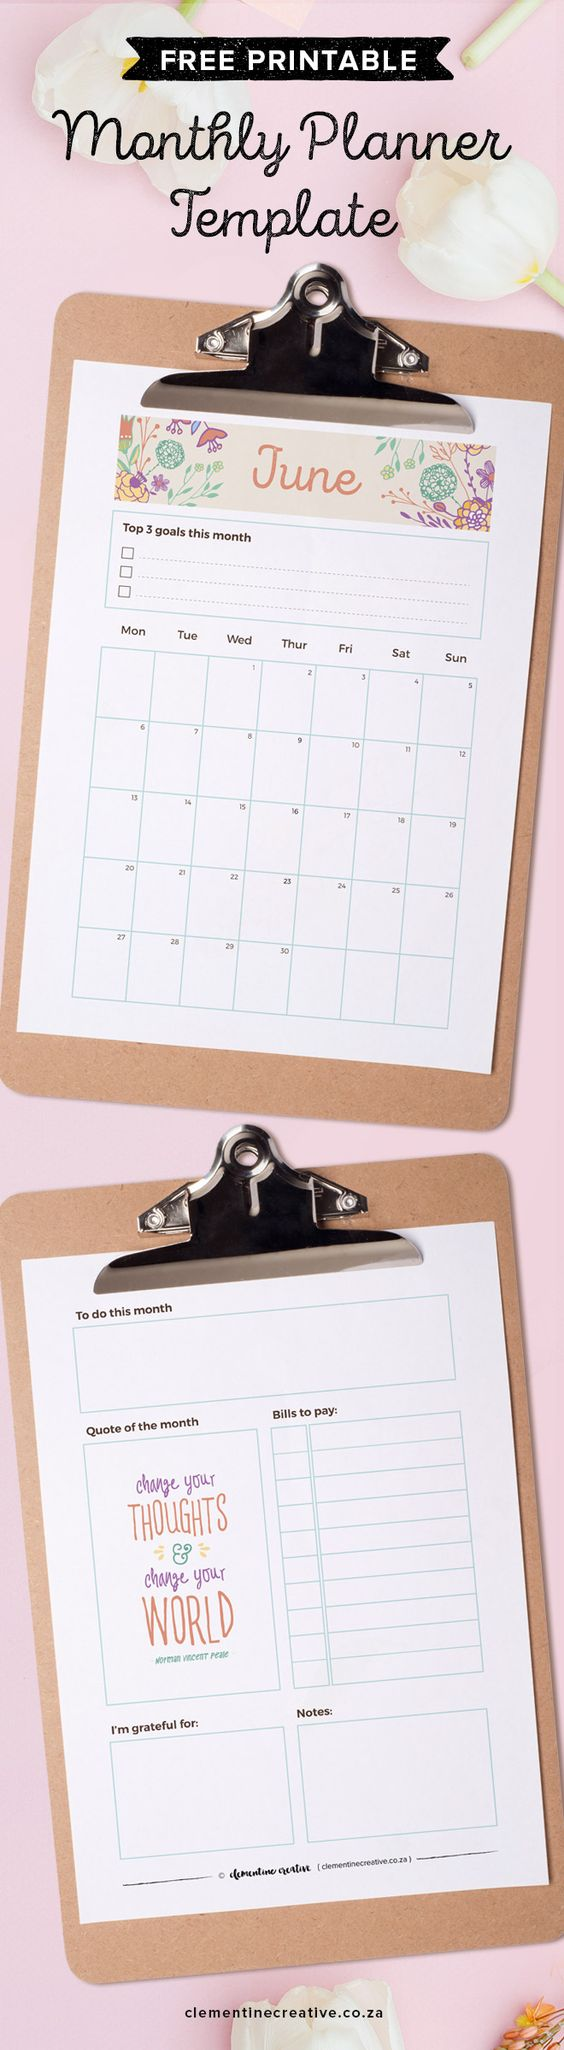 Monthly Calendar You Can Edit : June free printable monthly planner and calendar